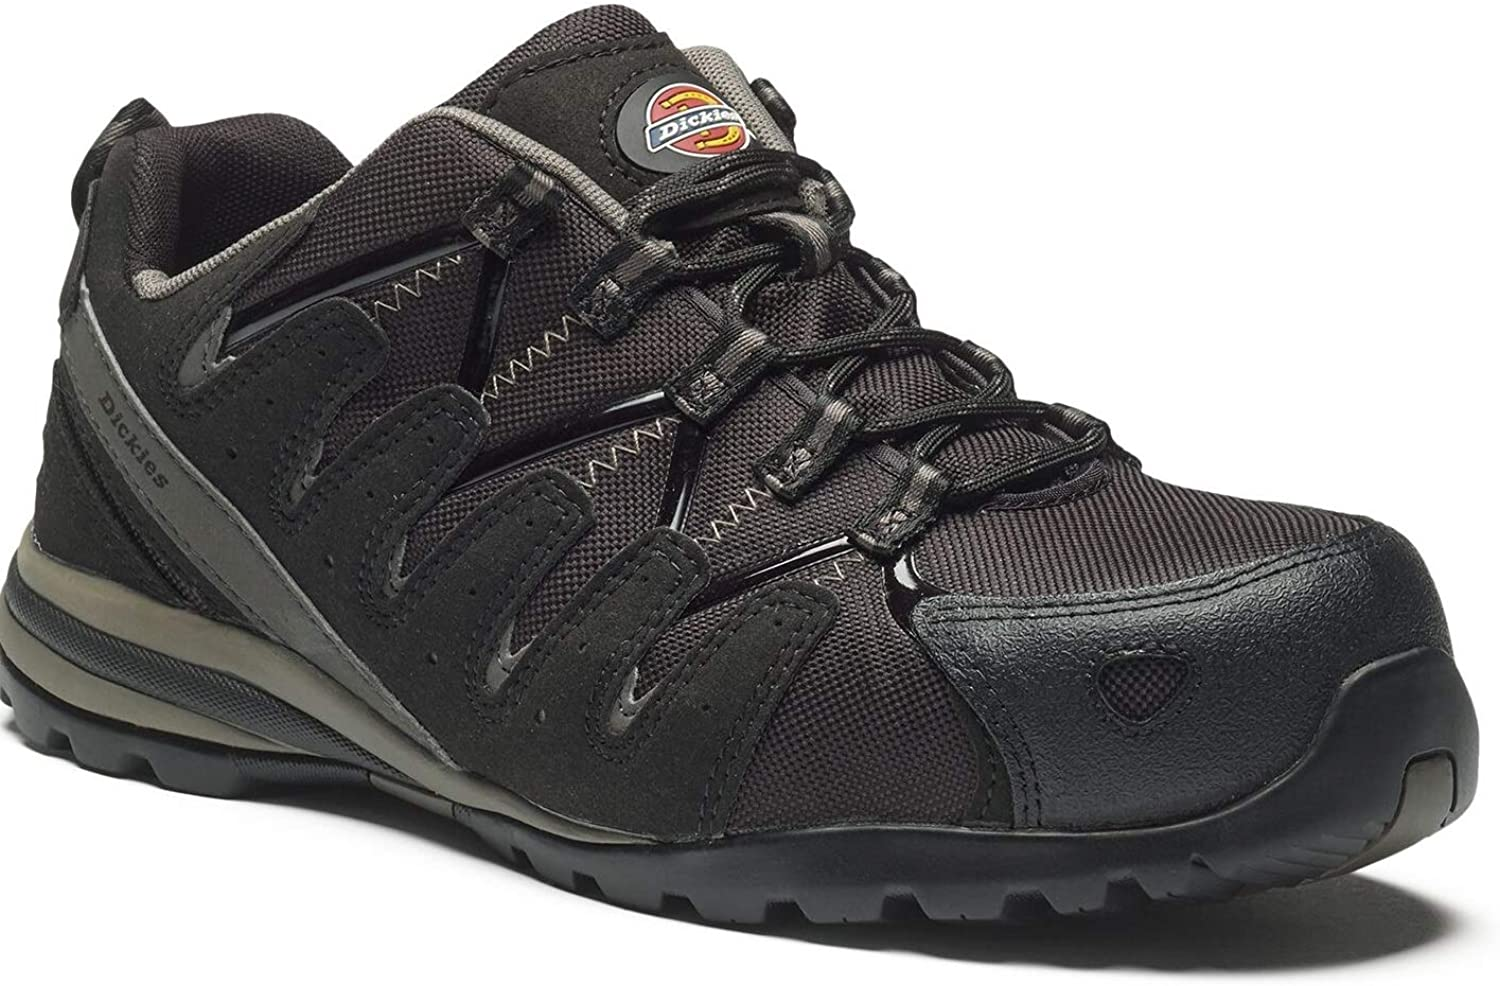 Dickies Tiber Composite Super Safety Trainers Strong Composite Toecap Non-Metallic Anti-Penetration Sole Lightweight Water-Resistant Mesh Uppers & Slip-Resistant Sole FC23530